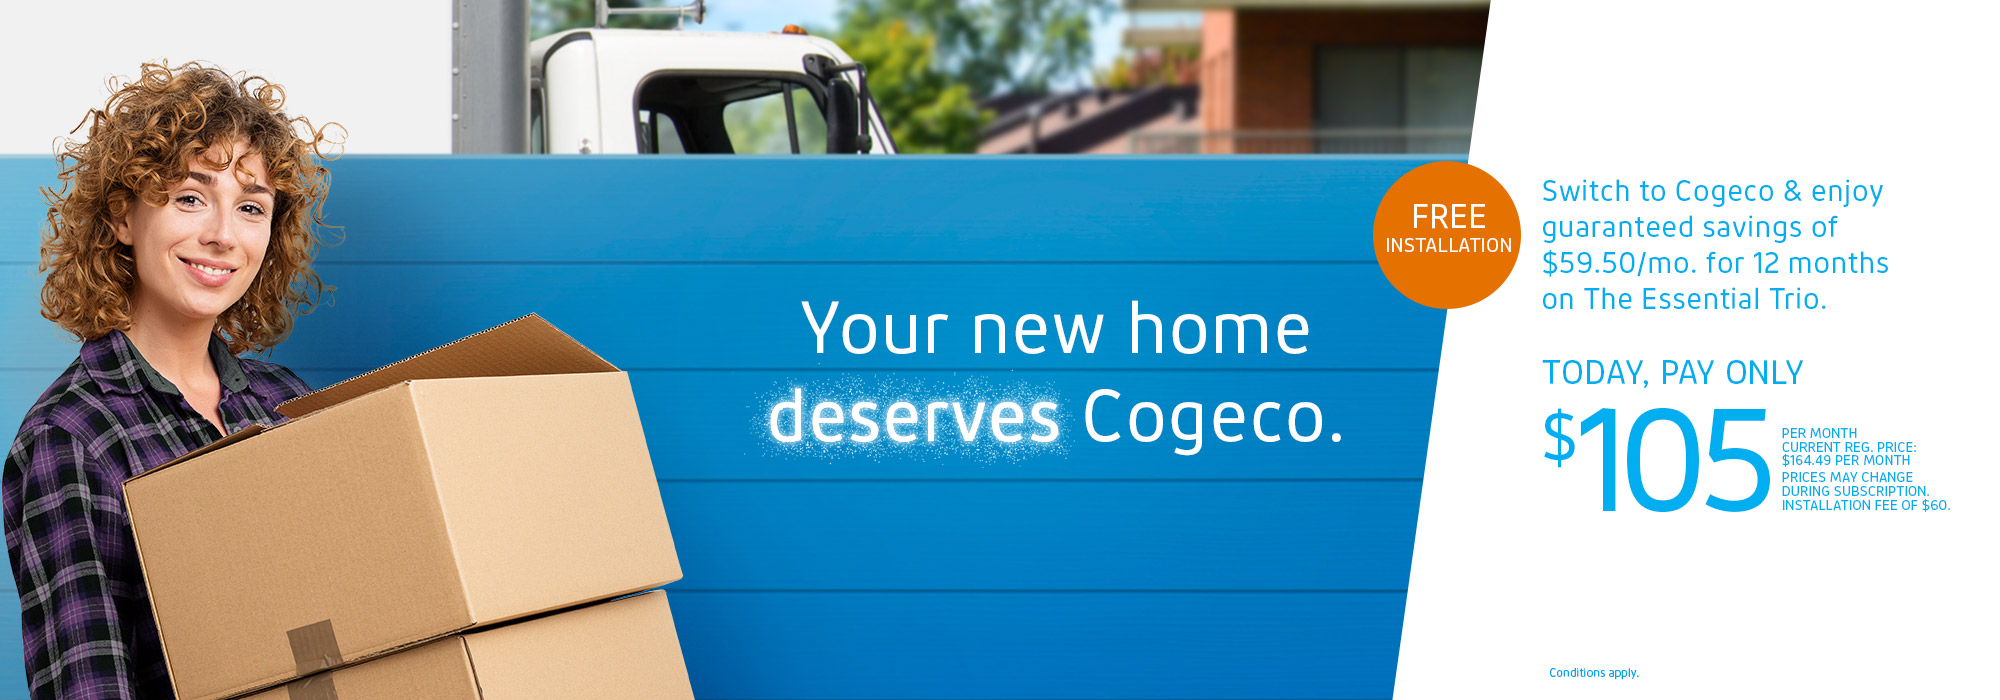 Your new home deserves Cogeco. FREE INSTALLATION. Switch to Cogeco & enjoy guaranteed savings of $59.50/mo. for 12 months on The Essential Trio. TODAY, PAY ONLY $105 /MO. CURRENT REG. PRICE:  $164.49/MO. PRICES MAY CHANGE DURING SUBSCRIPTION. INSTALLATION FEE OF $60.  Conditions apply.